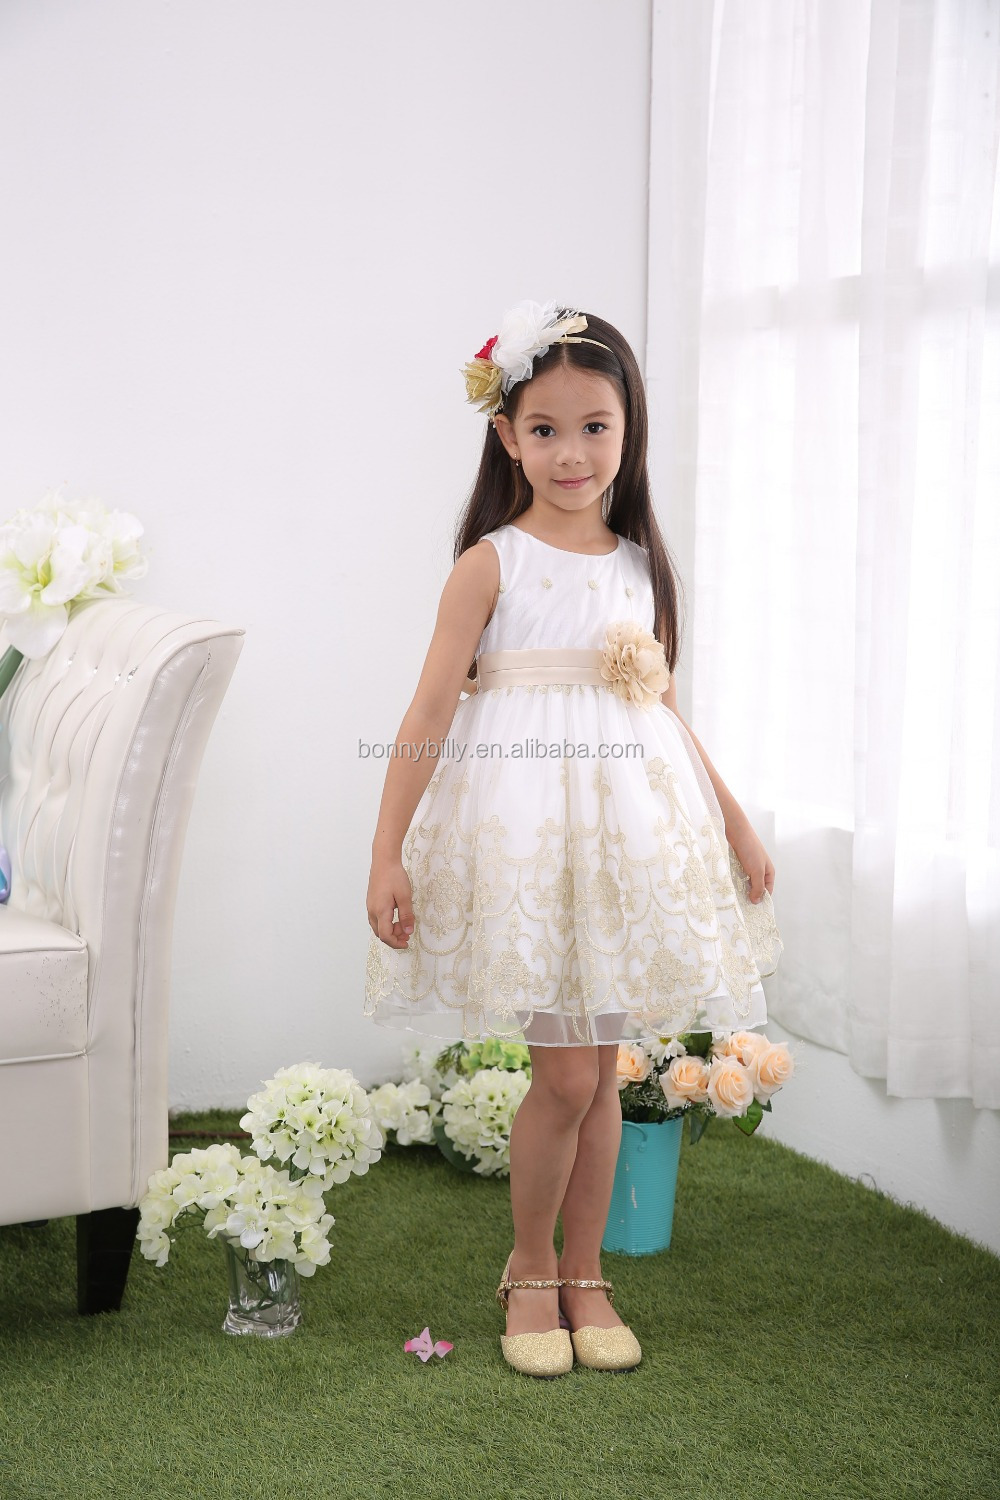 b8547cf22 Latest Kids Party Wear Dresses For Girls